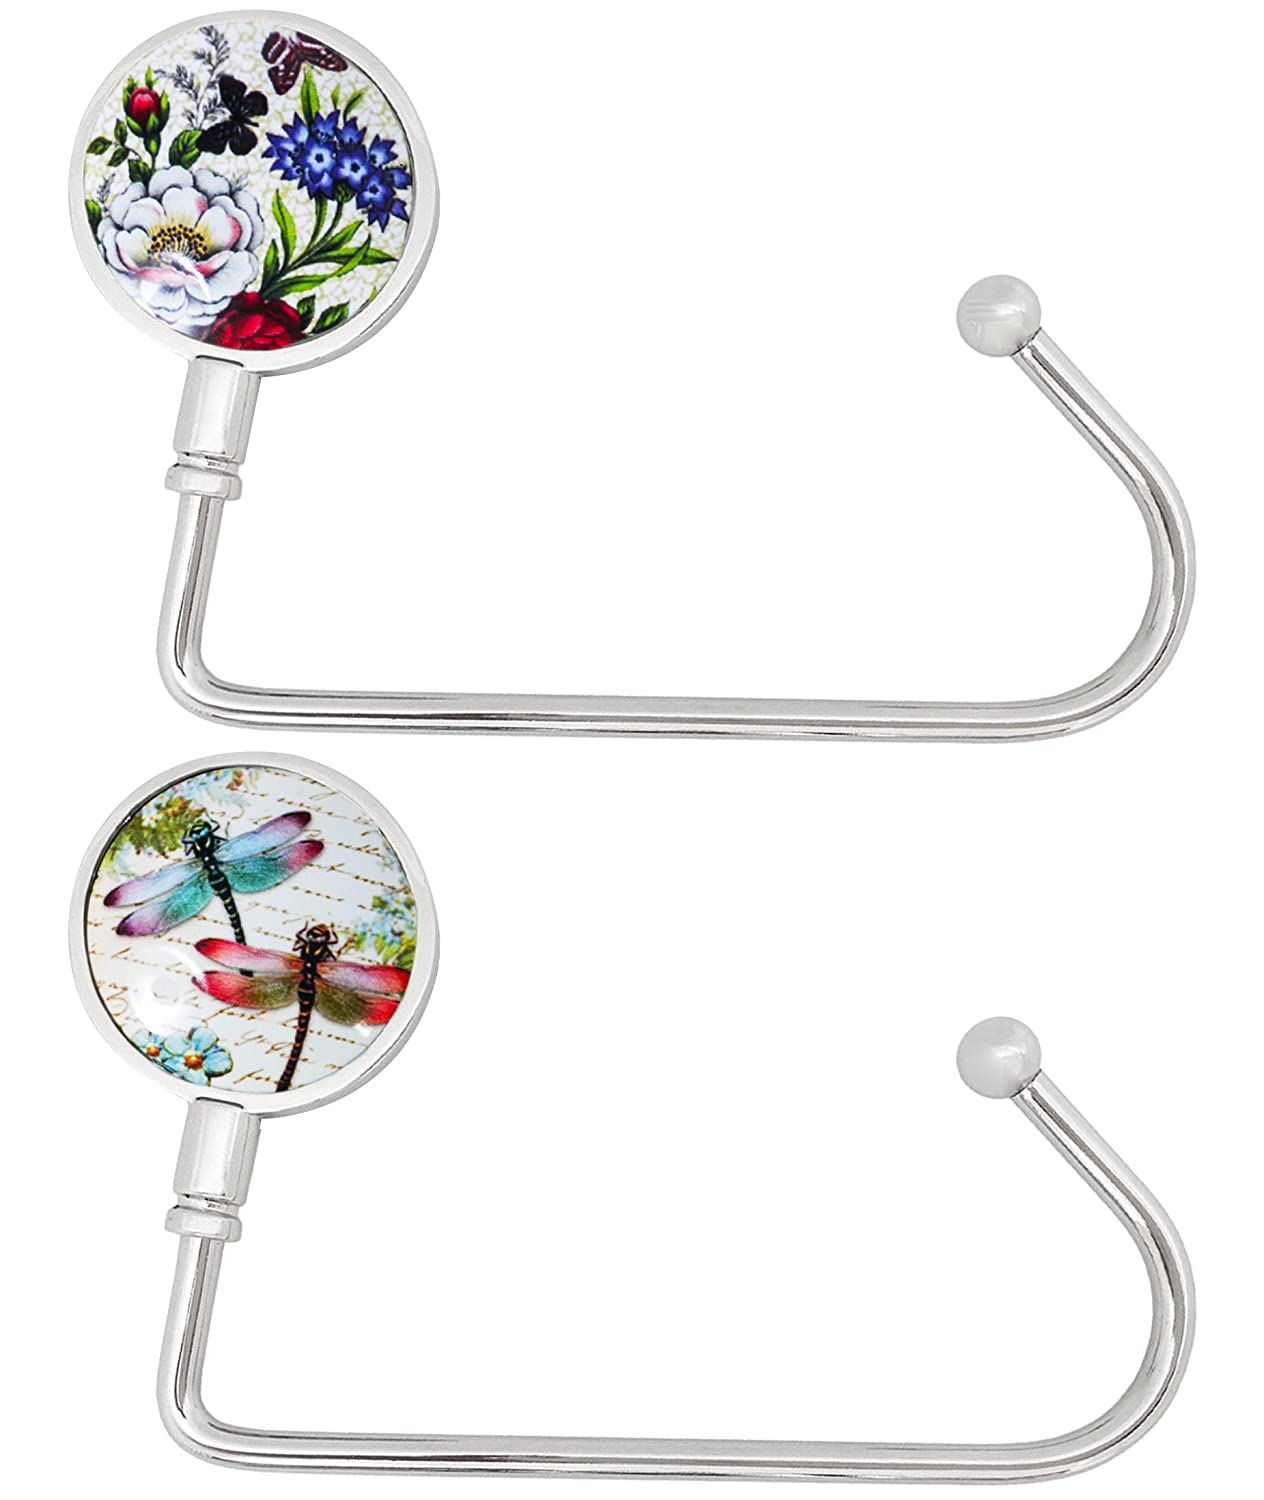 2 Pack Purse Hook - Portable Handbag Holder Table Hanger 006-HB-2